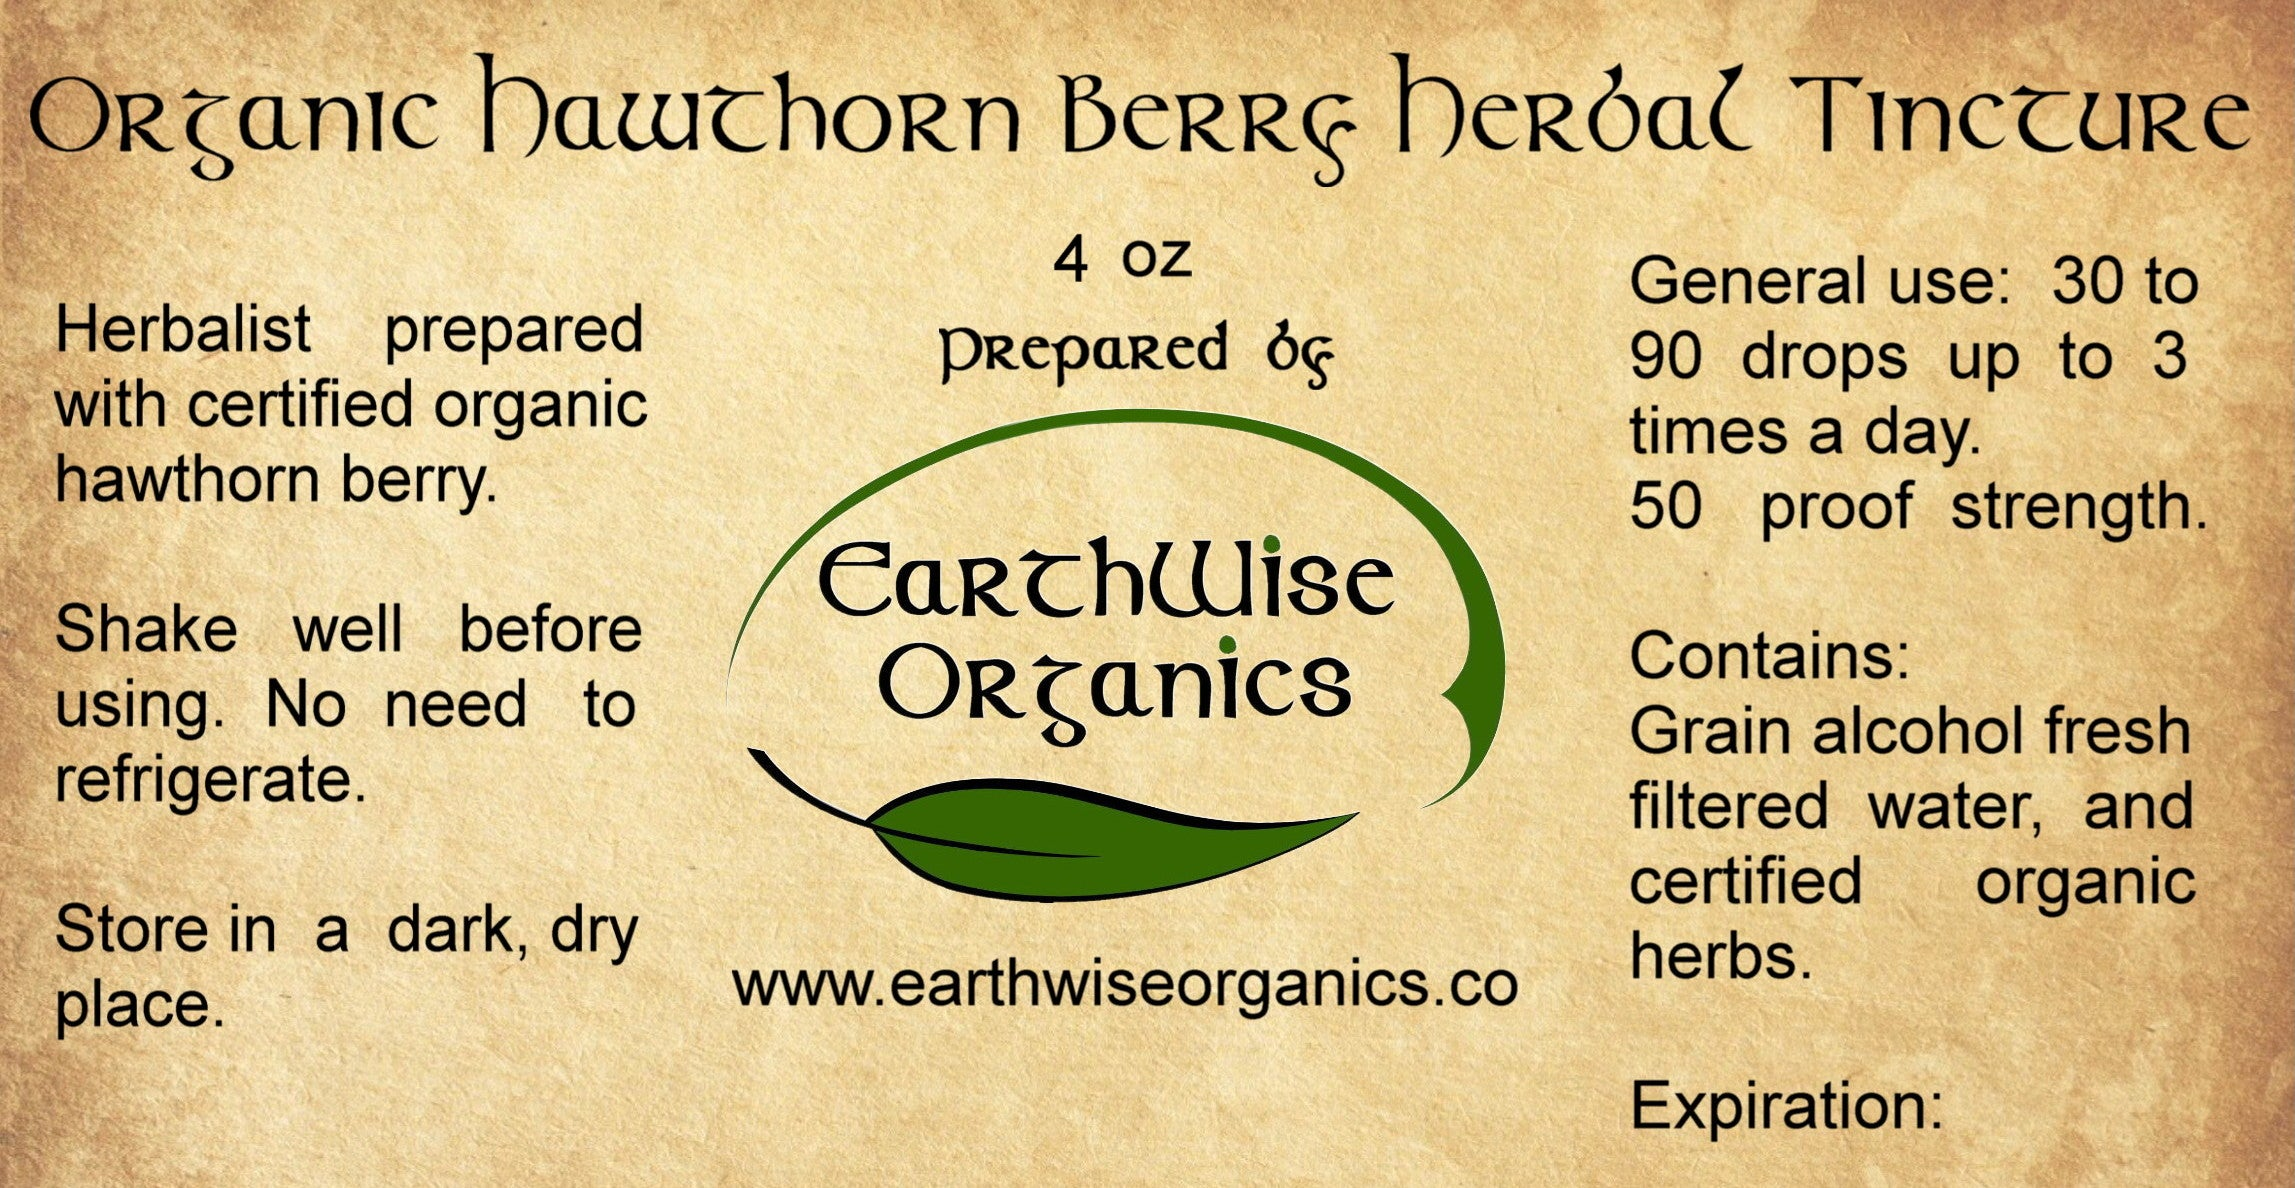 hawthorn berry organic herbal tincture label